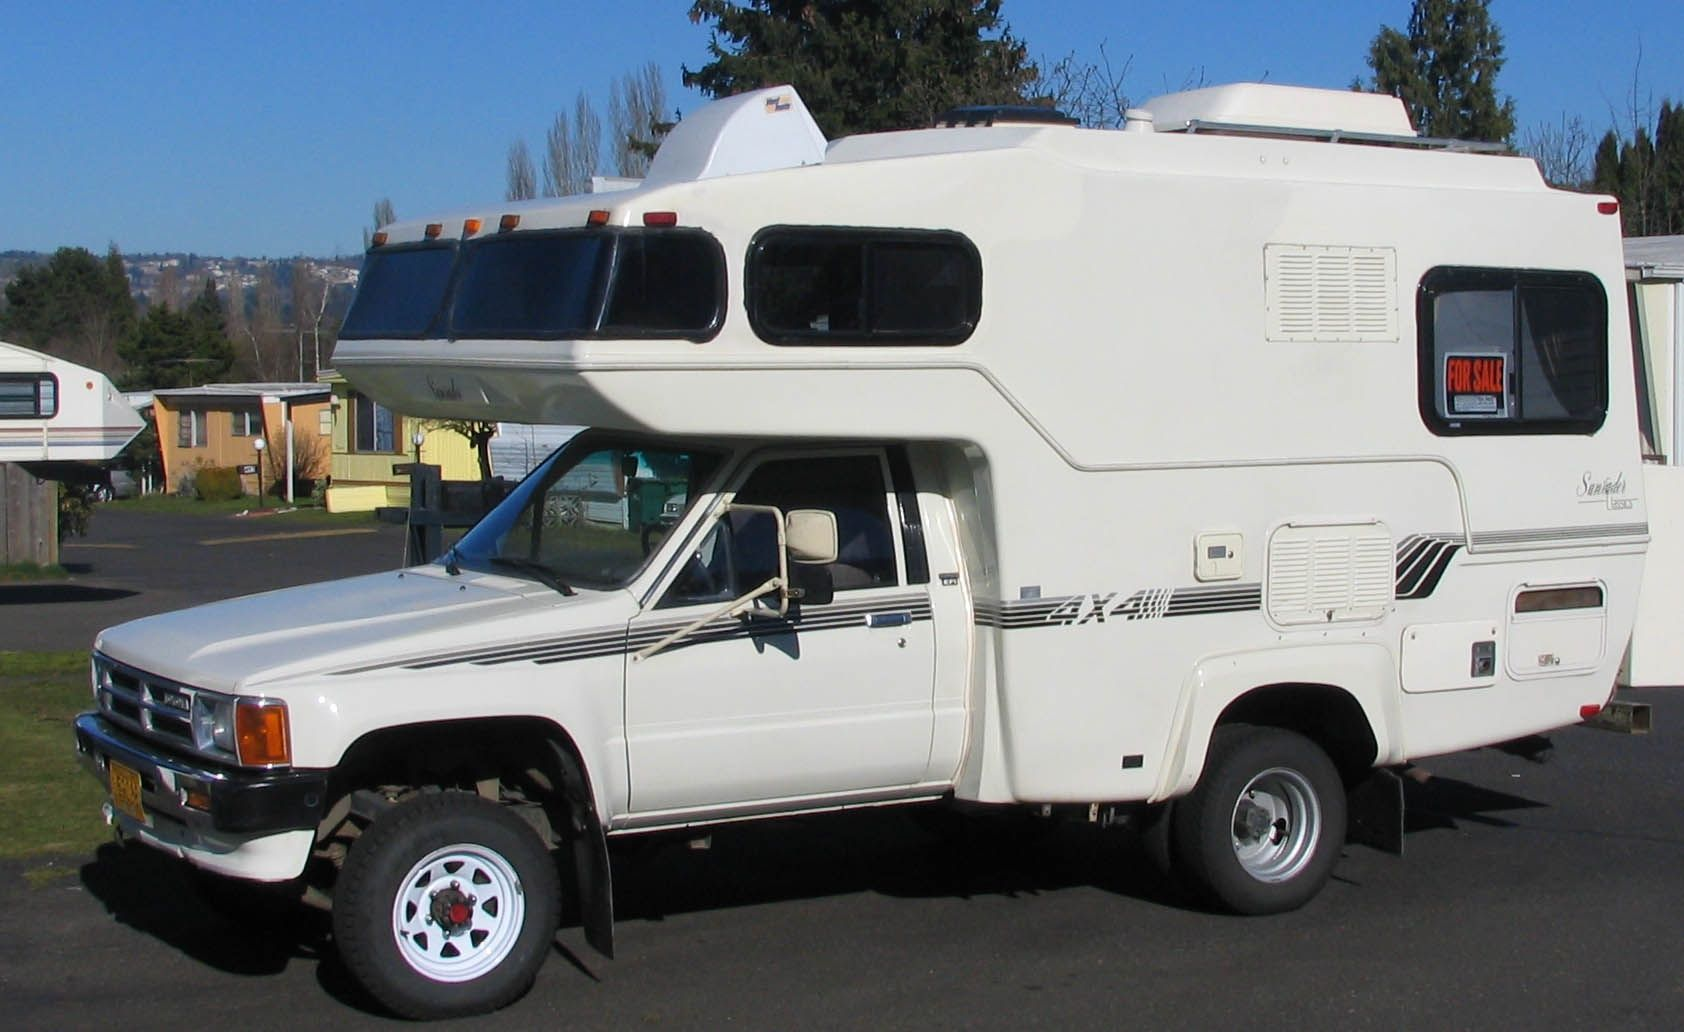 Toyota 4x4 Motorhome Recreation Vehicles Pinterest Rv Plumbing Diagram Have A 1987 17 Bigfoot Travel Trailer